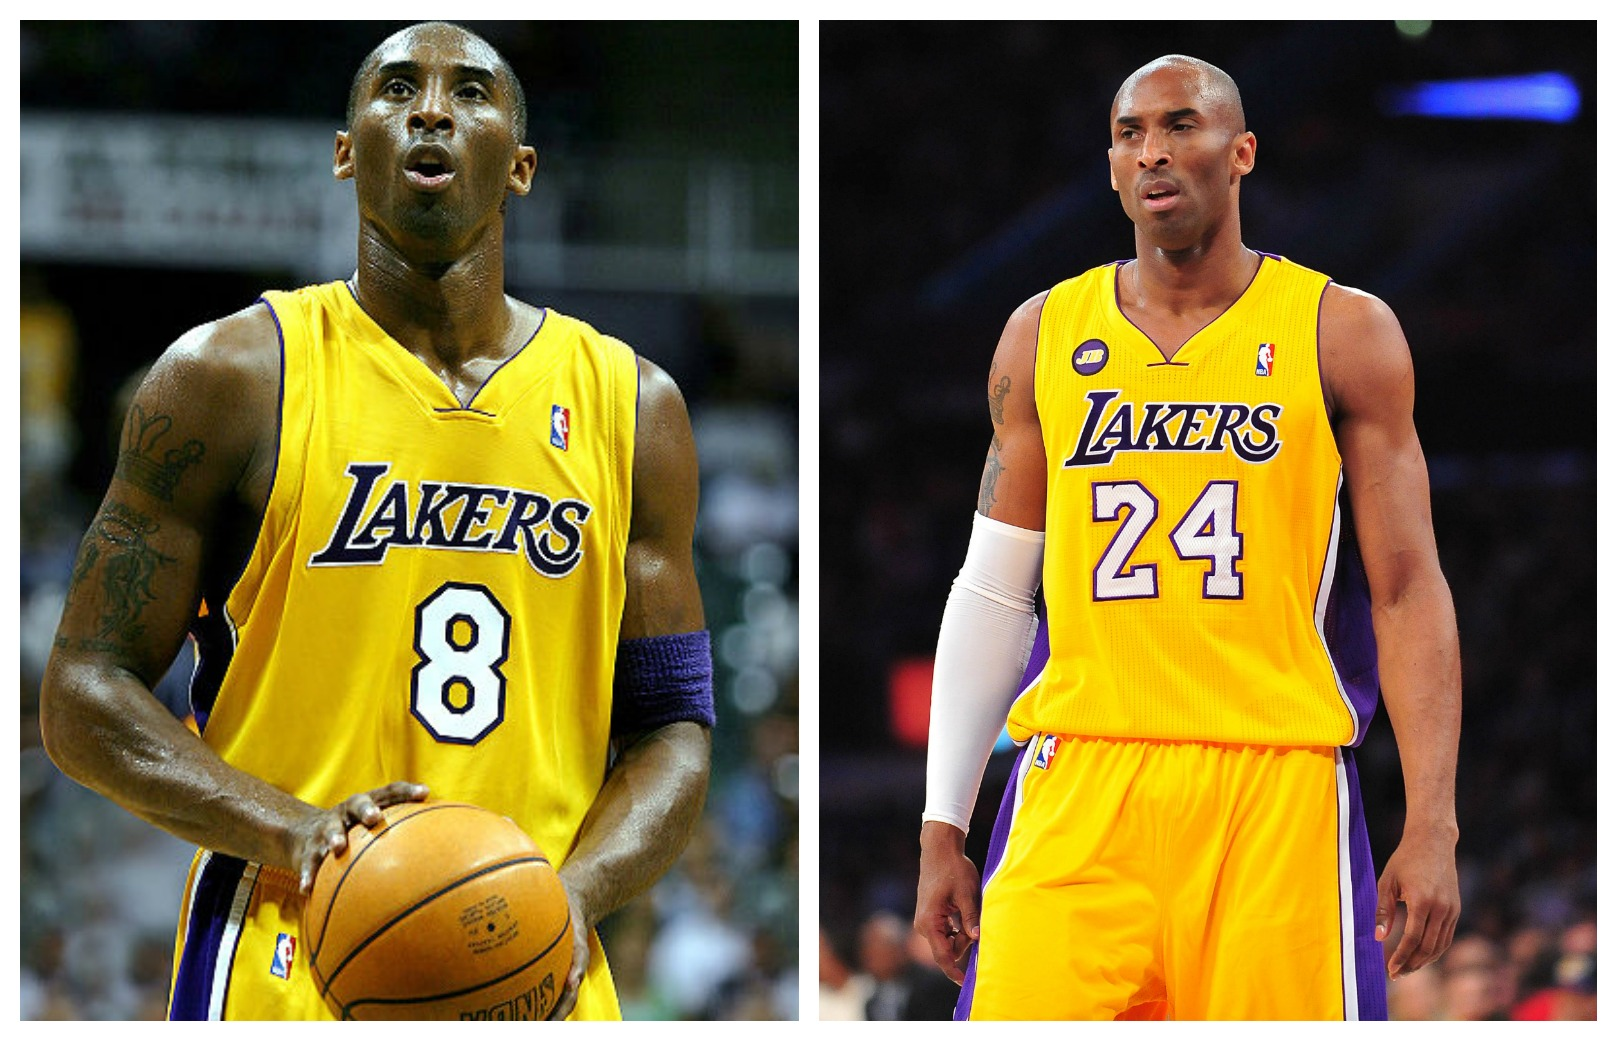 Twice The Honor: Lakers To Retire Both Kobe Jersey Numbers